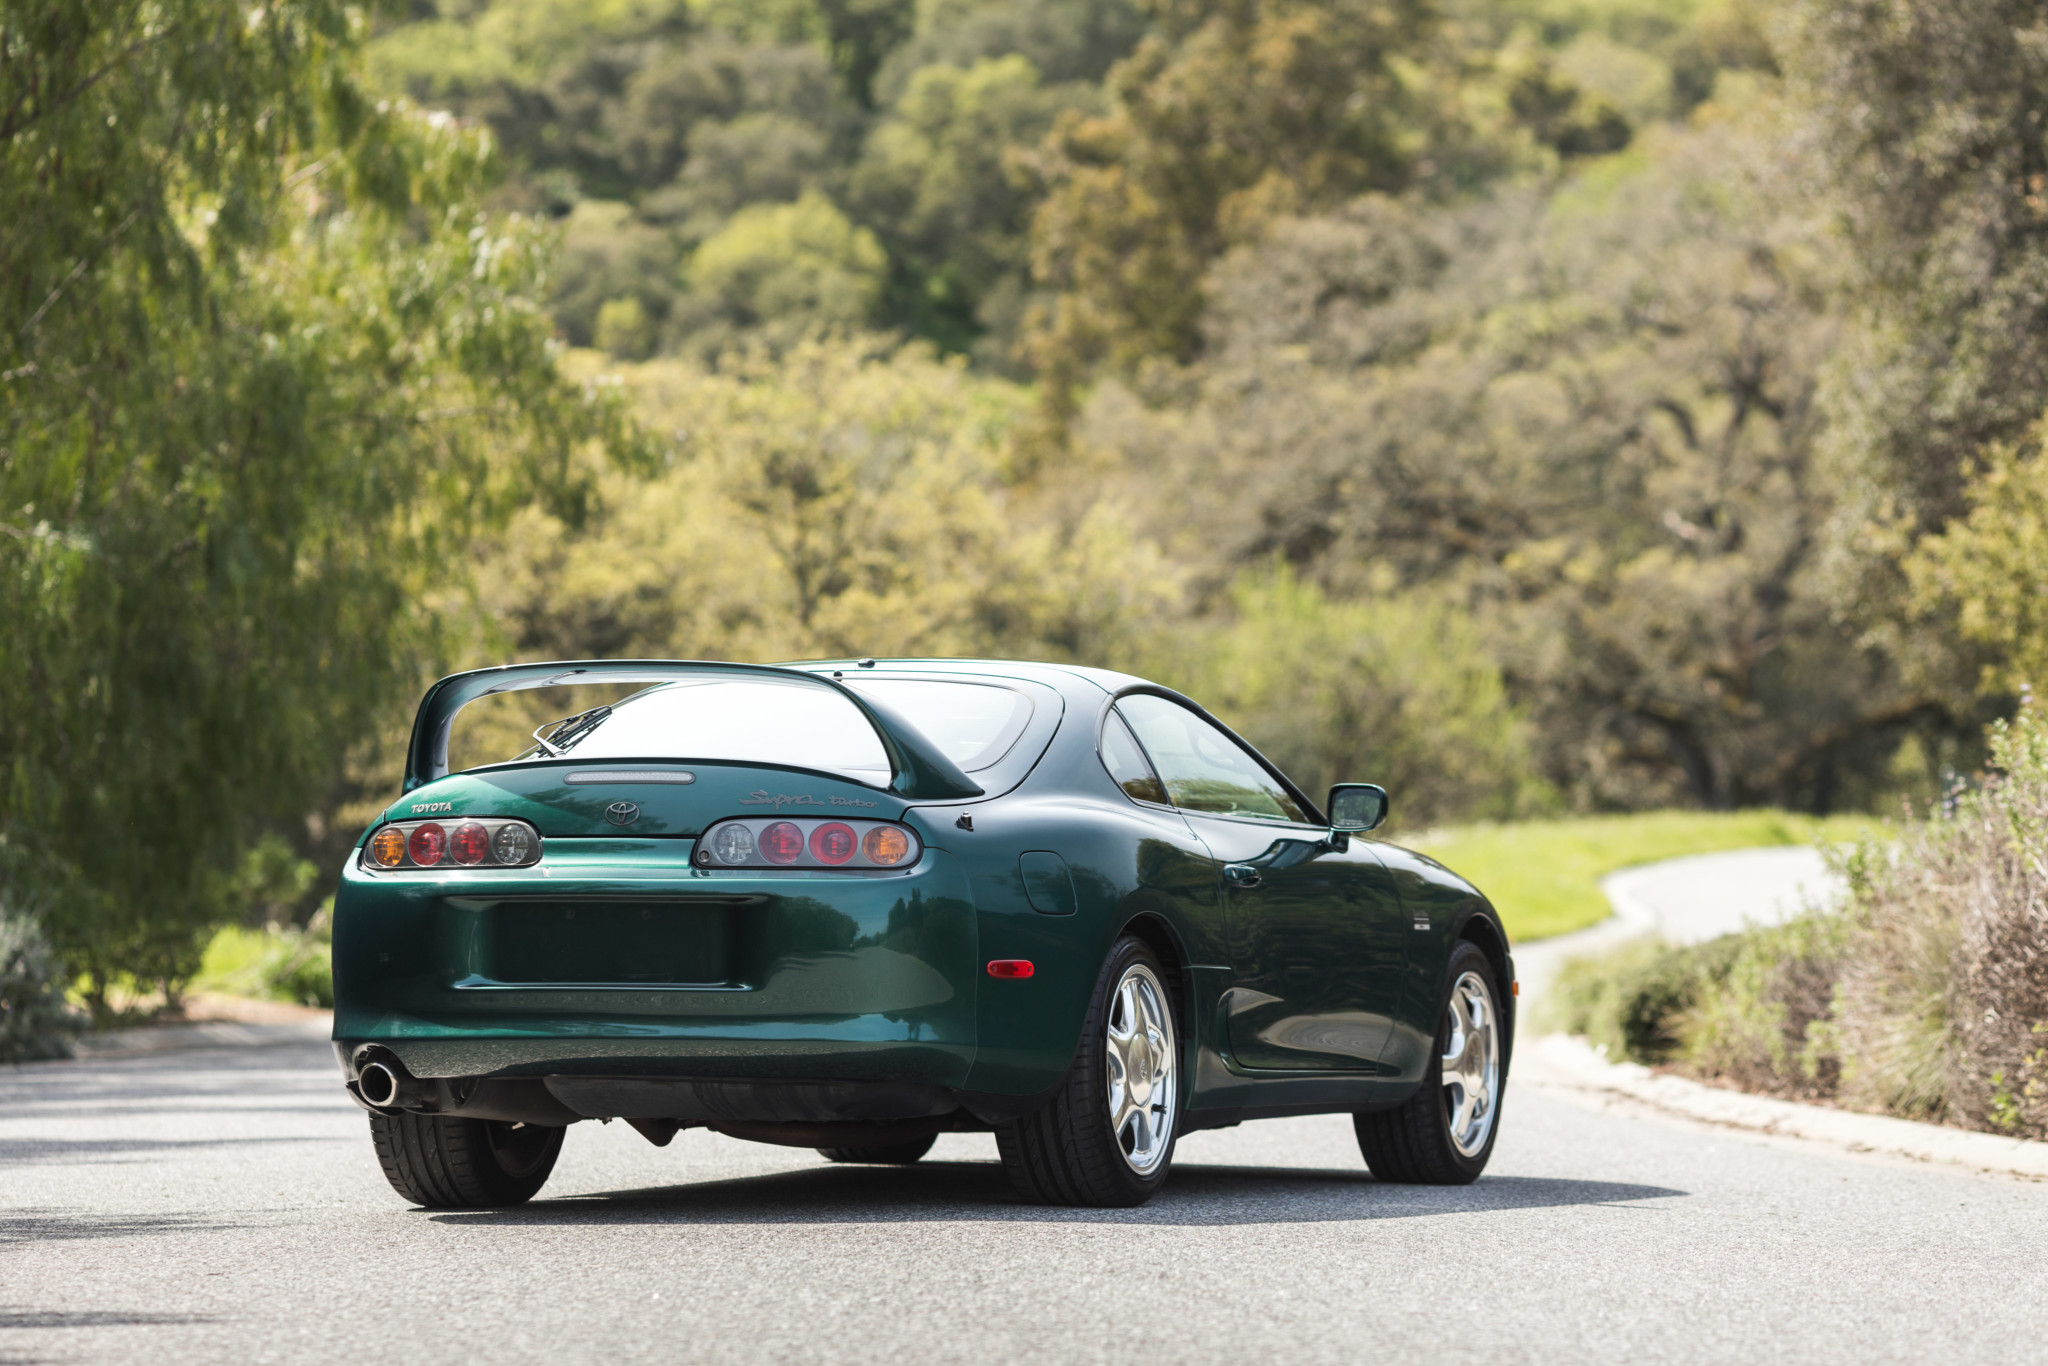 Toyota-Supra-Twin-Turbo-1997-sale-15